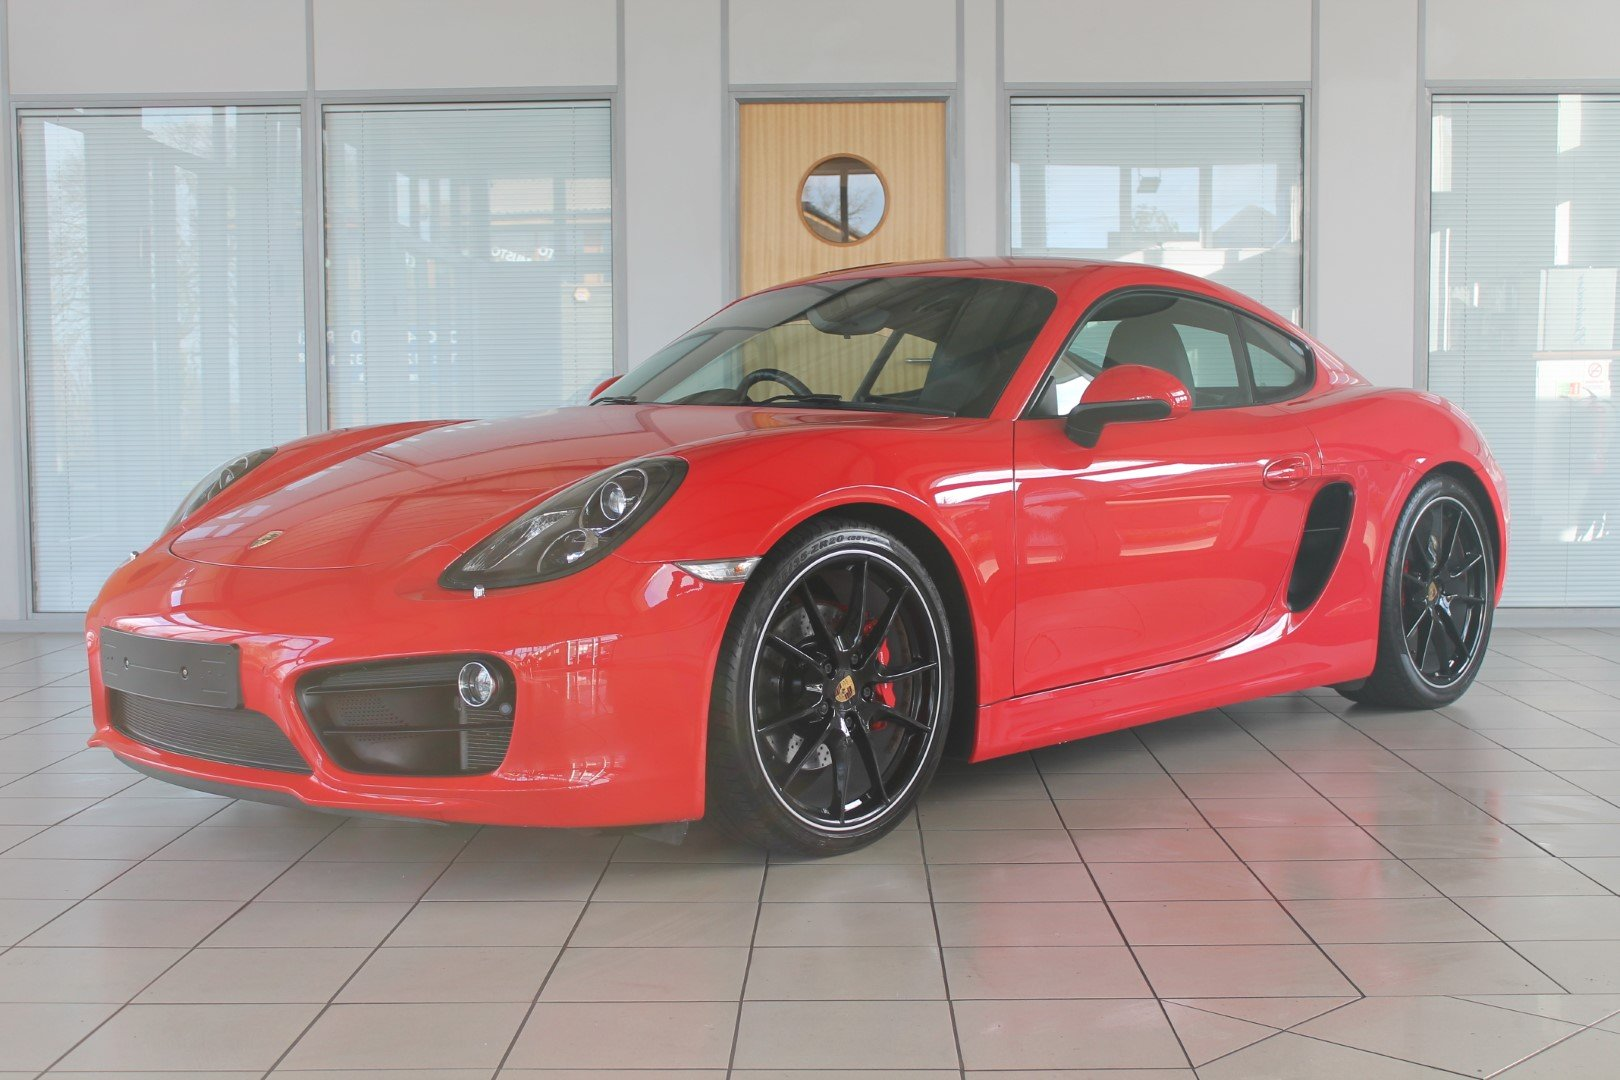 2014 Cayman (981) S Manual For Sale (picture 1 of 6)